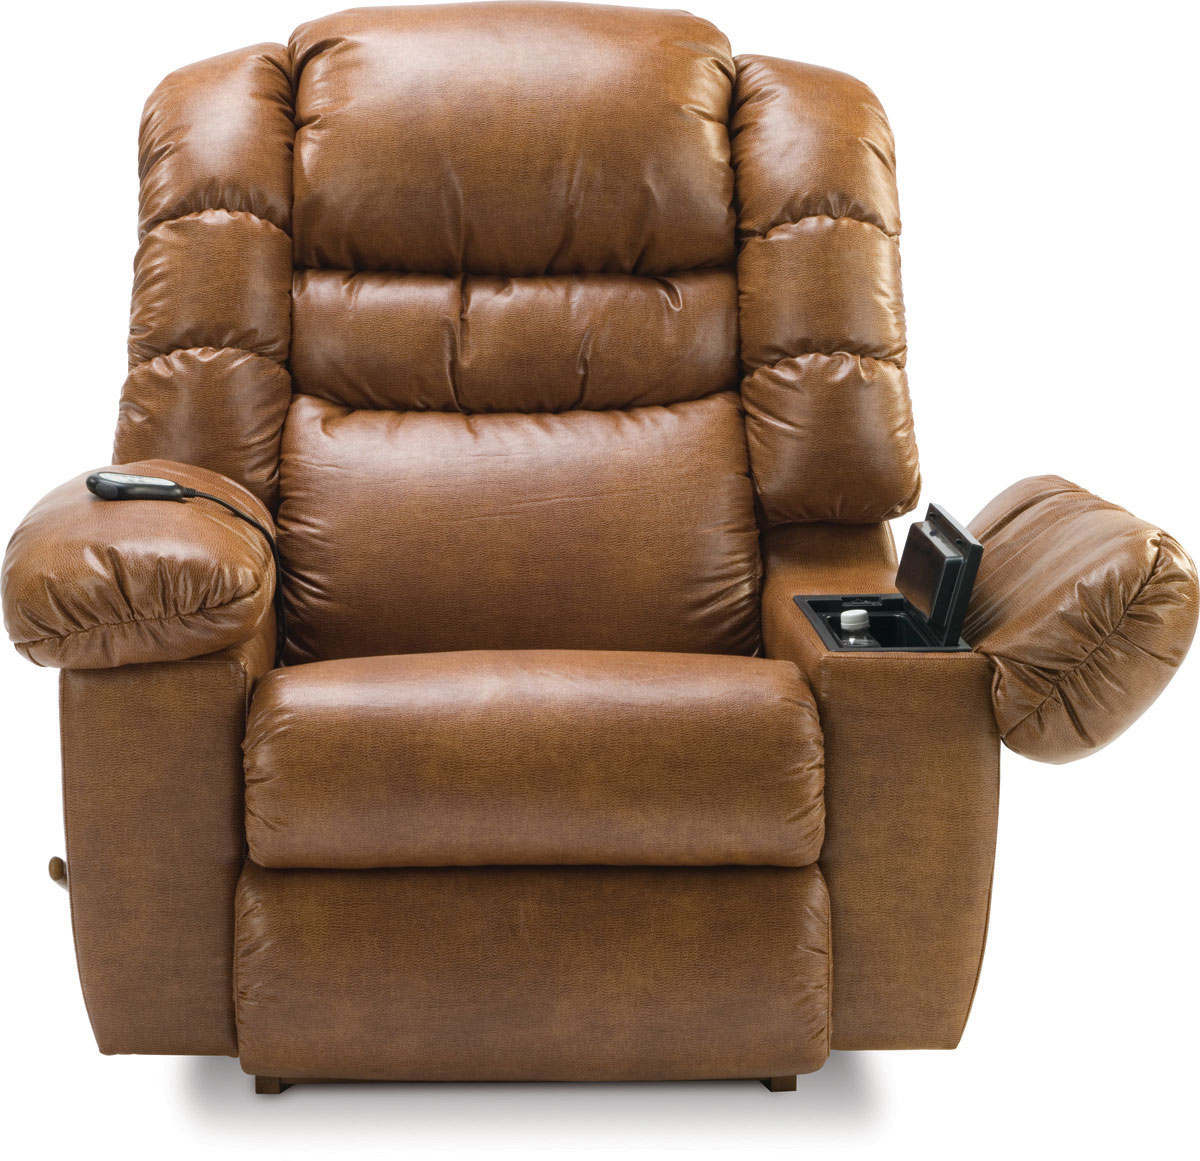 Most Comfortable Chair Most Comfortable Recliner Homesfeed